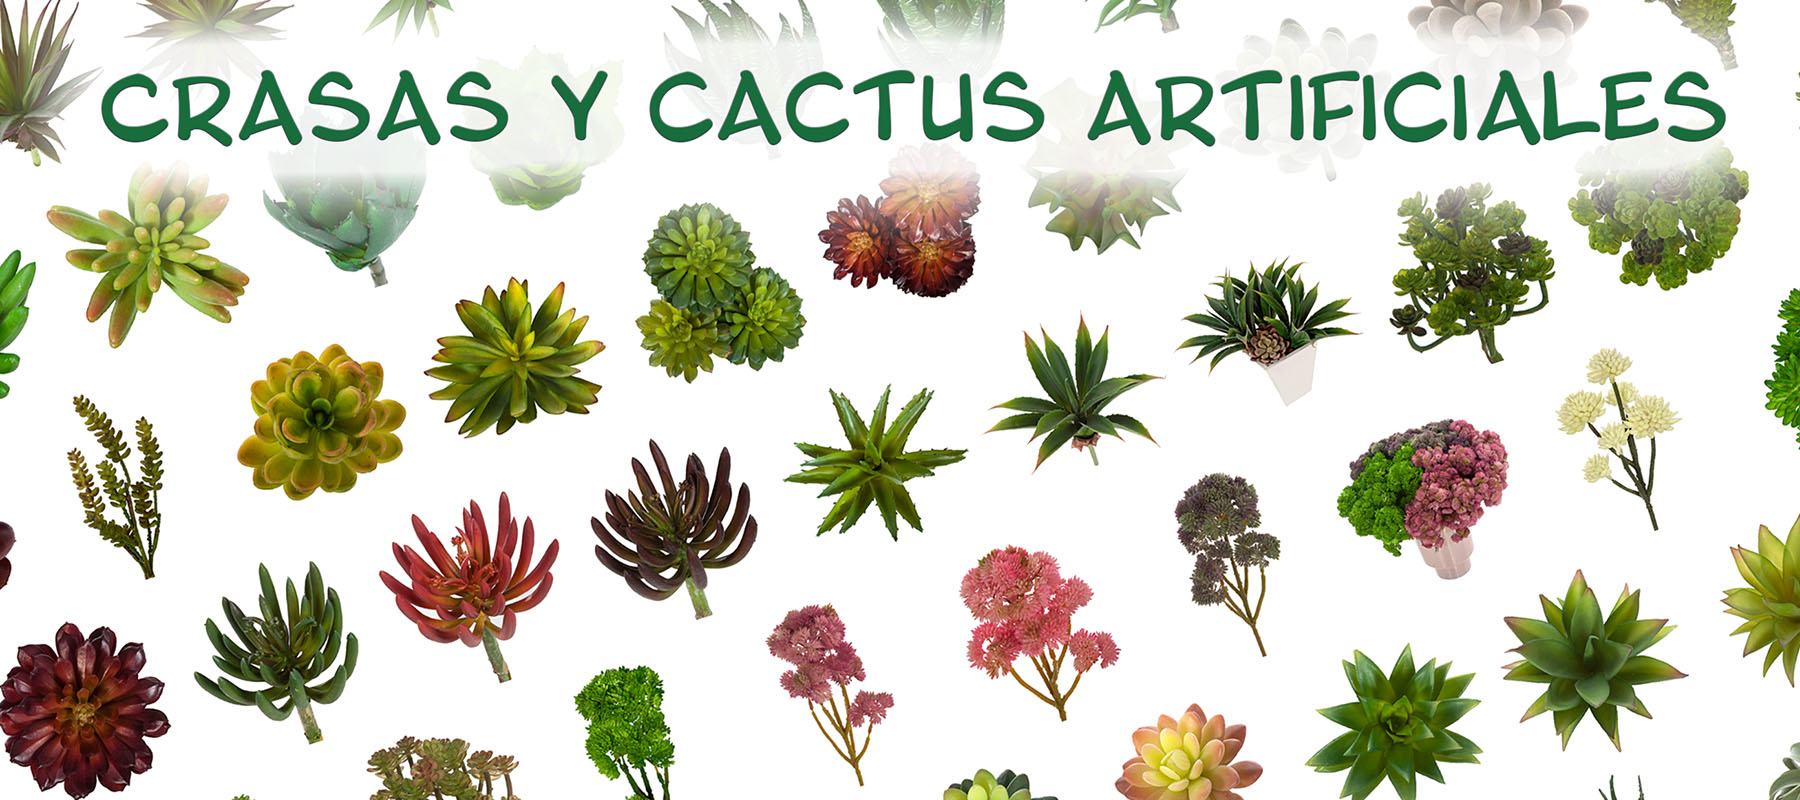 Crasas y cactus artificiales - La Llimona home